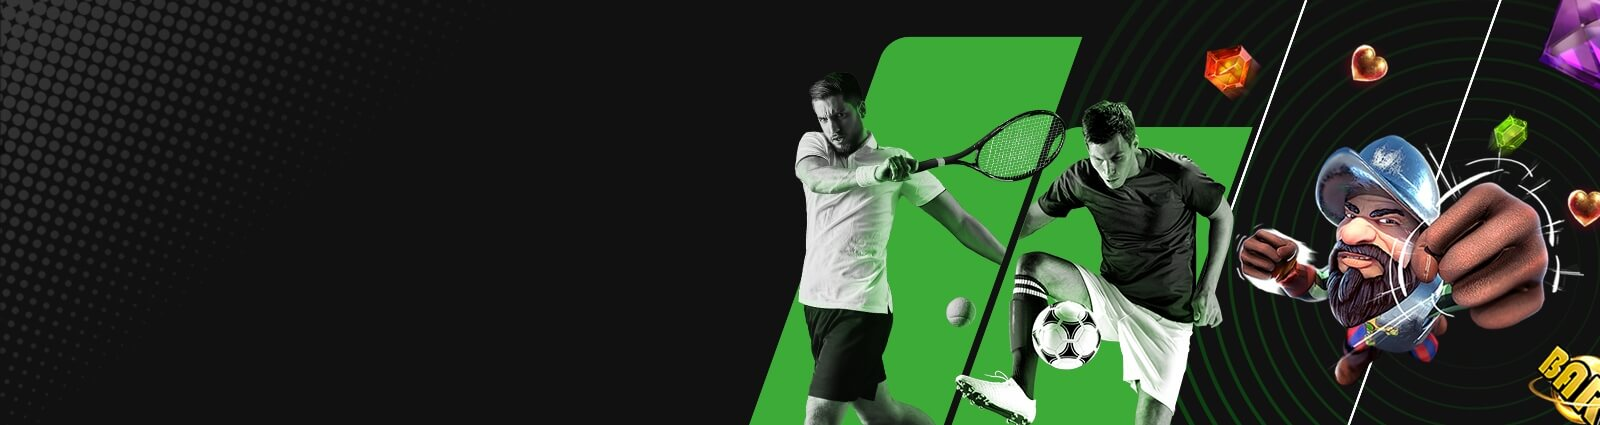 Welcome to Unibet!